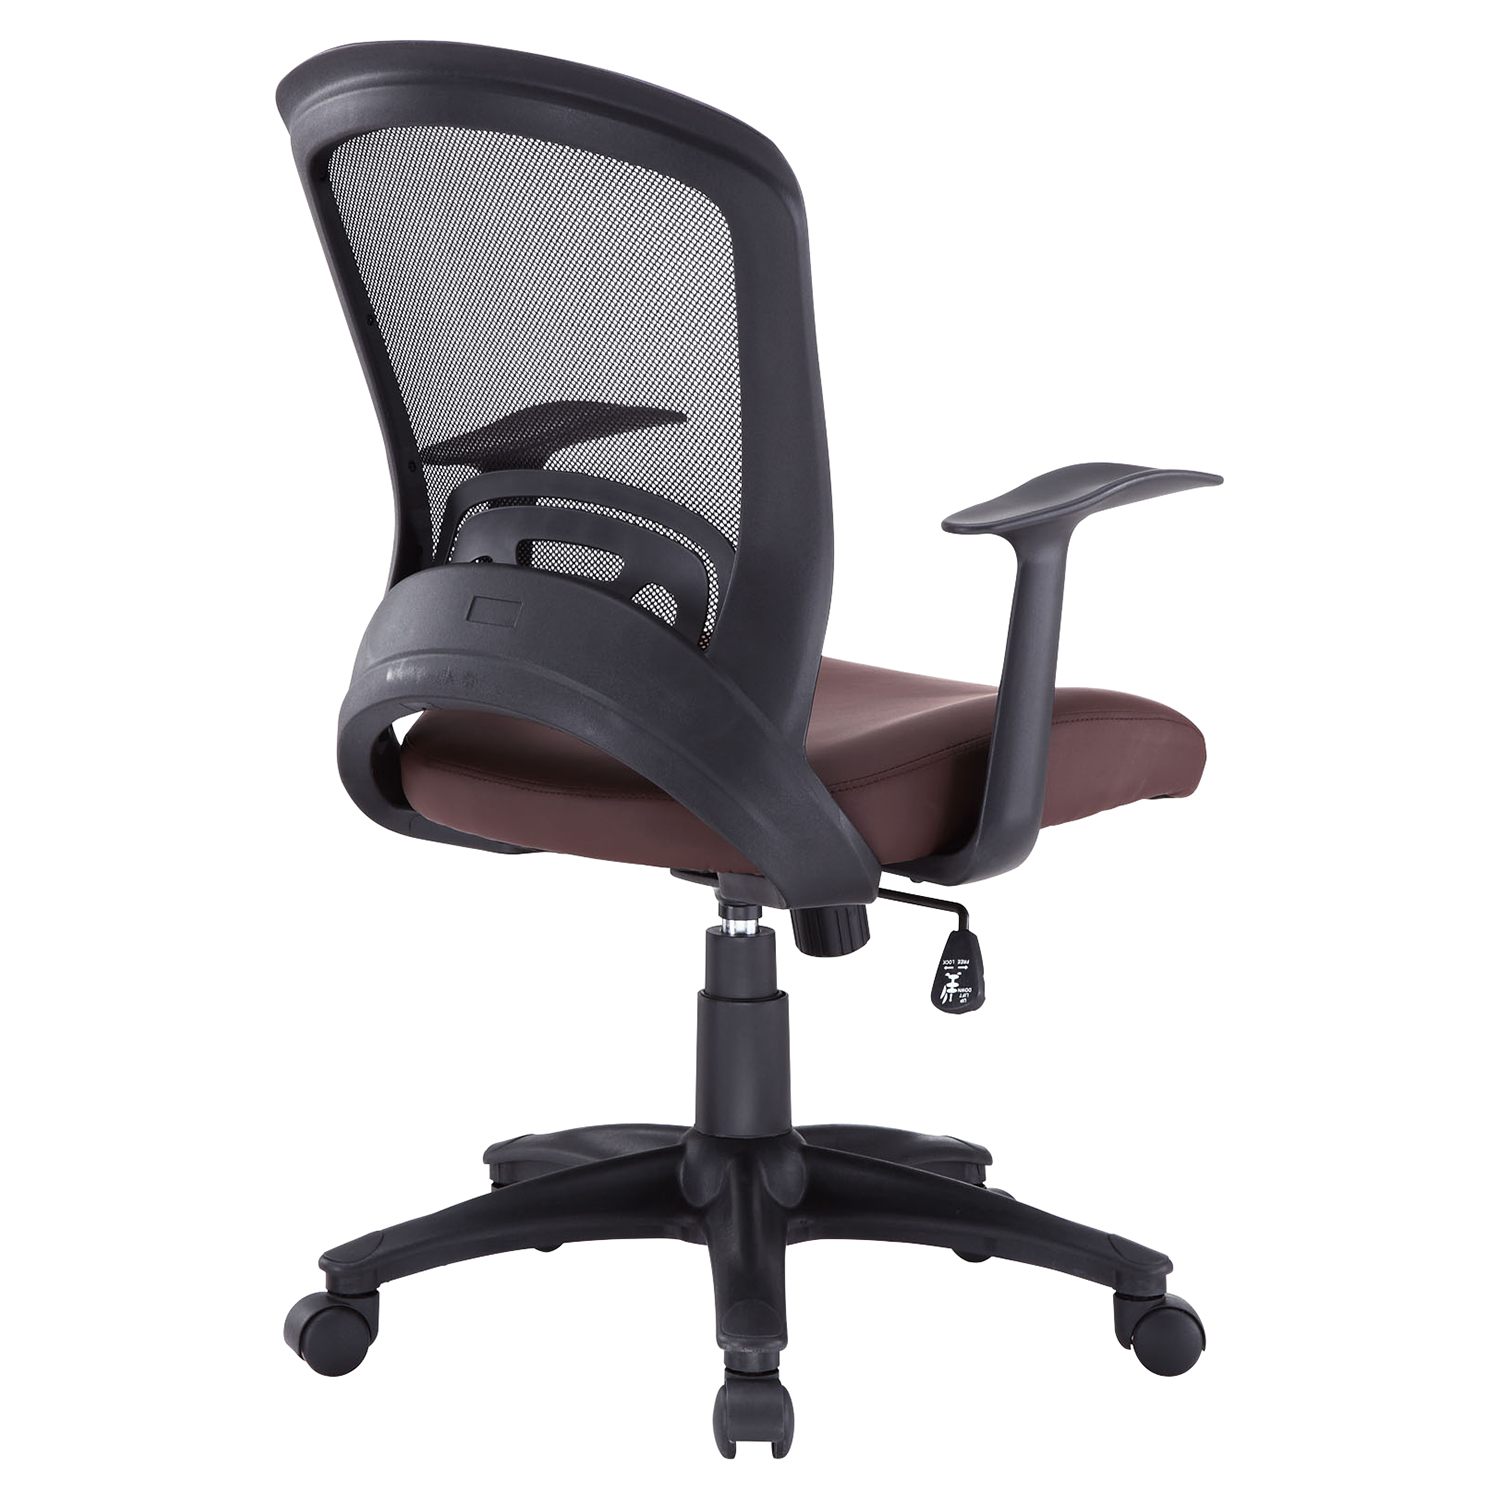 Pulse Leatherette Office Chair - Adjustable Height, Swivel, Brown - EEI-756-BRN